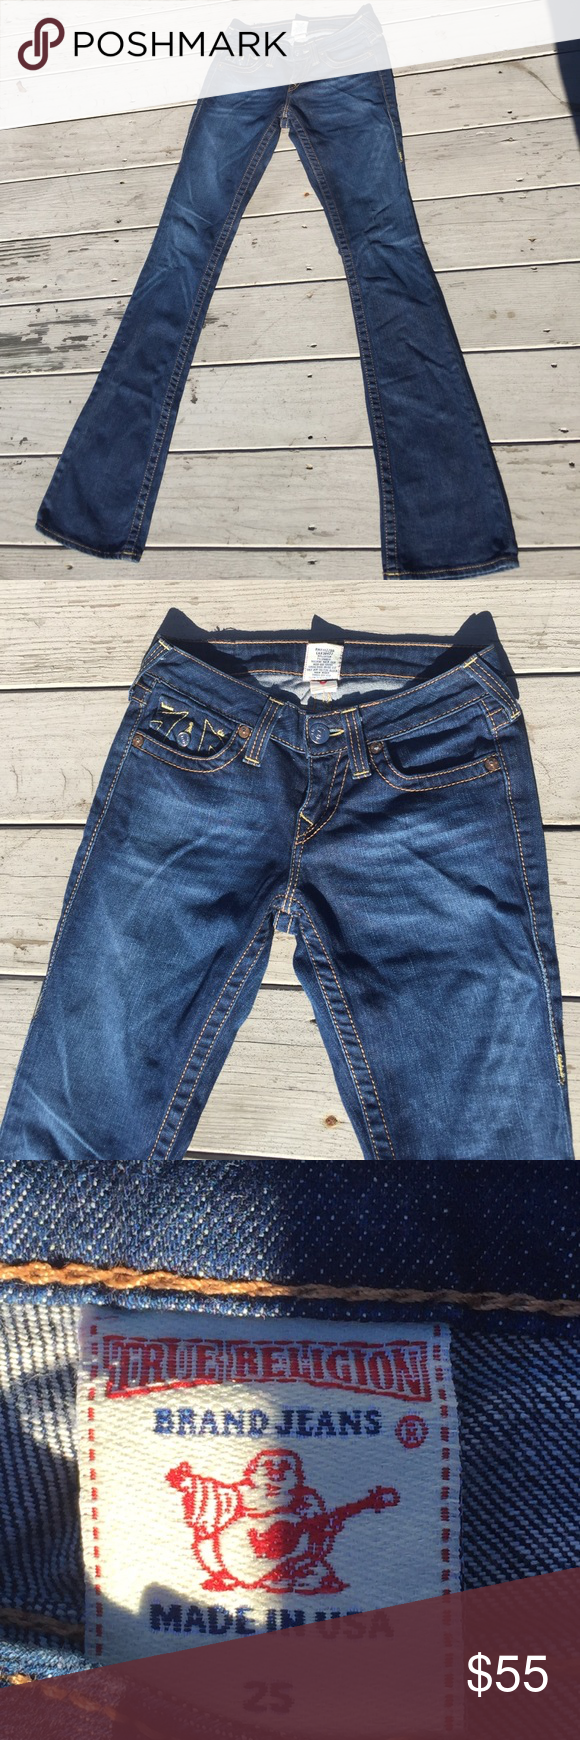 5d2c5398354 True Religion Becky Bootcut Jeans 25 X 34 True Religion Bootcut Becky Jeans,  Size 25, inseam 34 inches, five pocket jeans, rise is 7 1/2 inches, ...